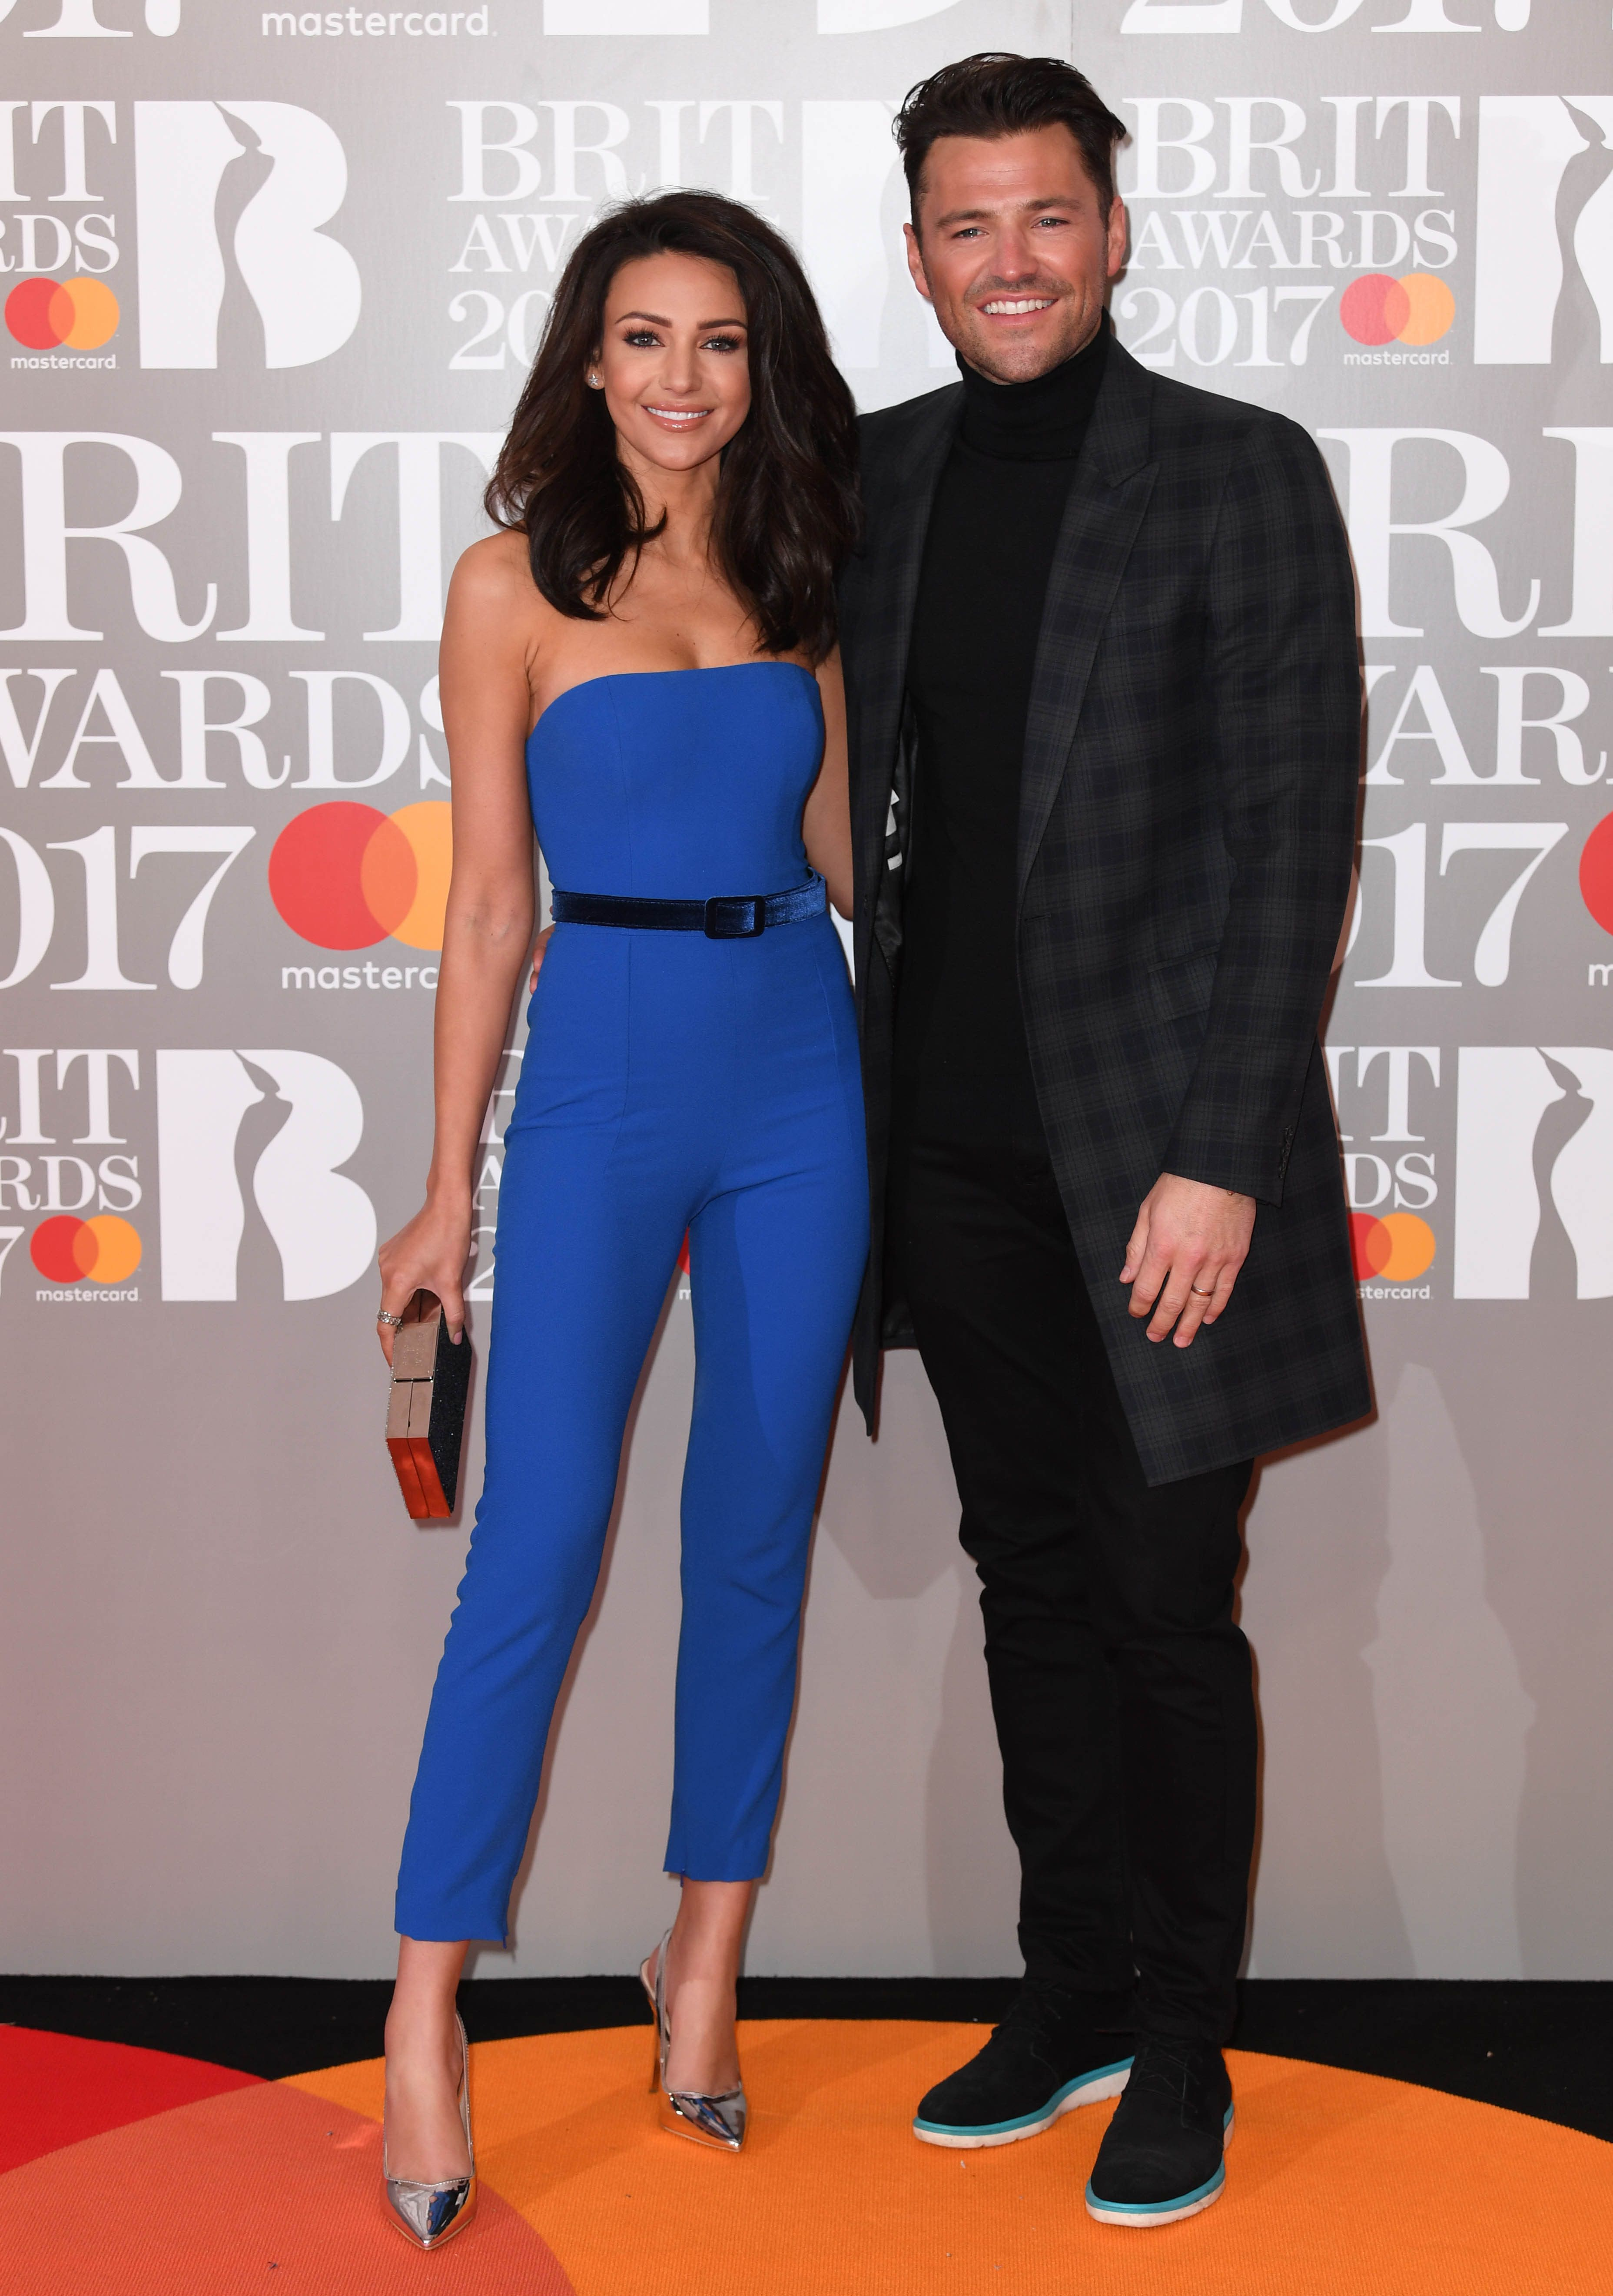 Mark Wright Shoots Down Michelle Keegan 'Strictly Come Dancing'